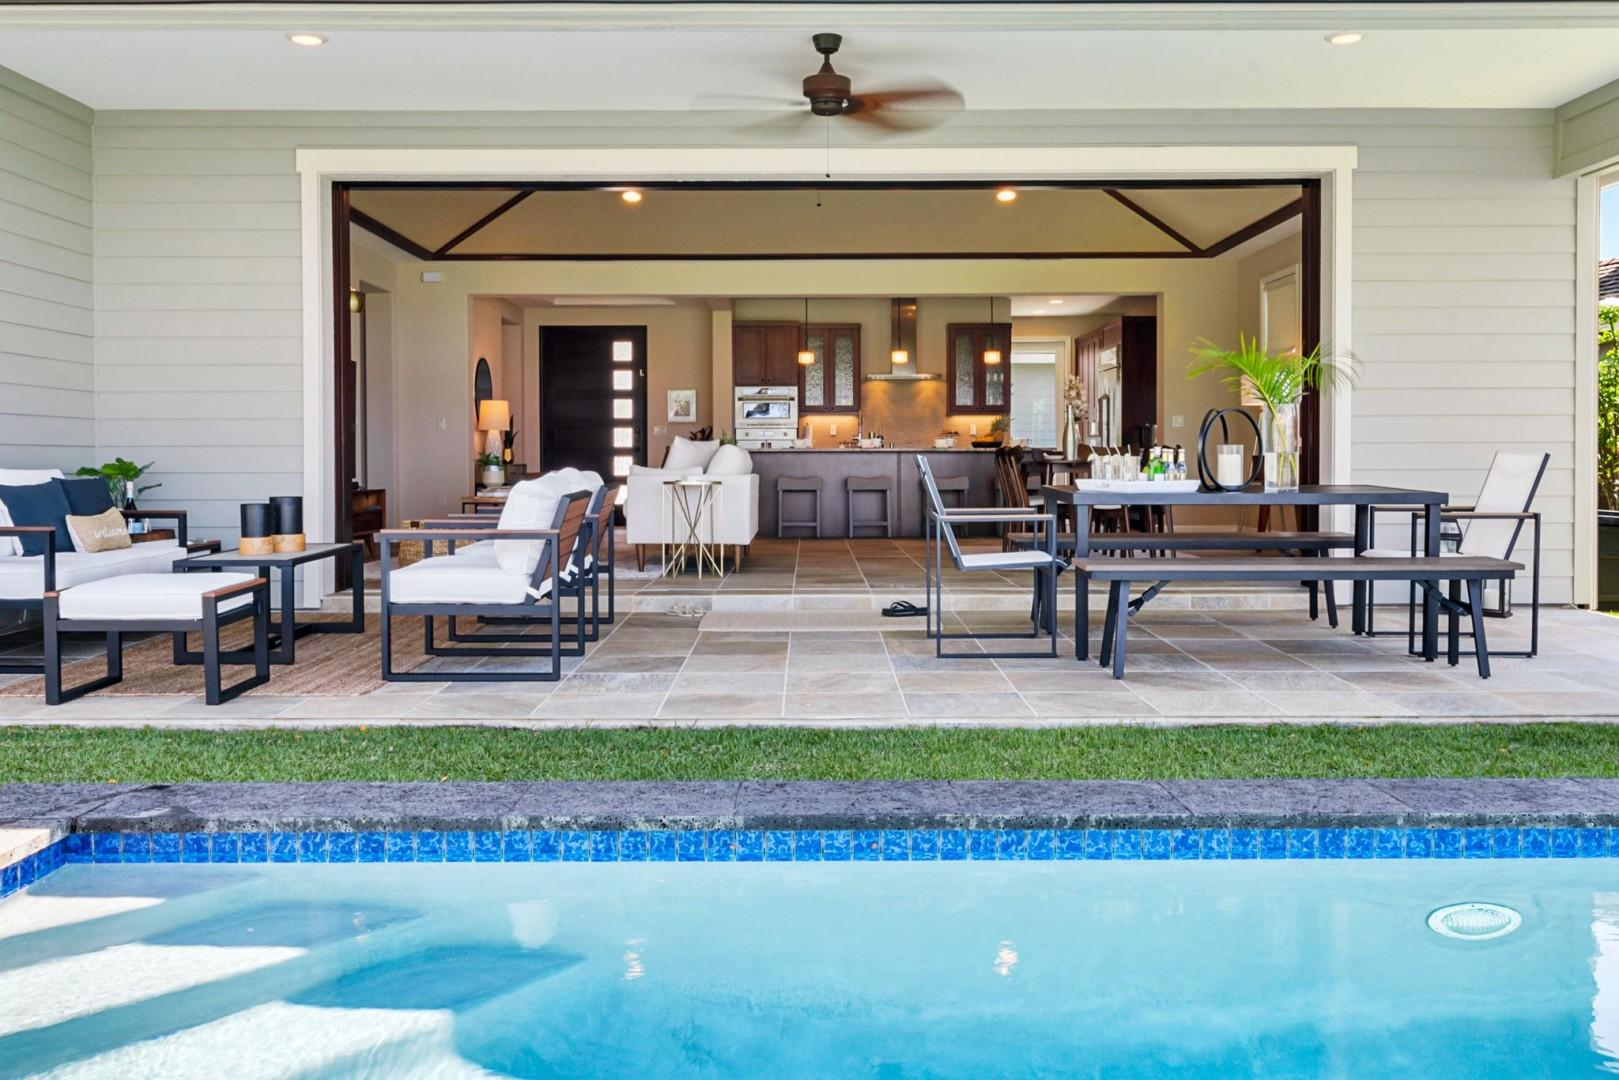 Large pocket doors open to encompass the Lanai as a part of the living area